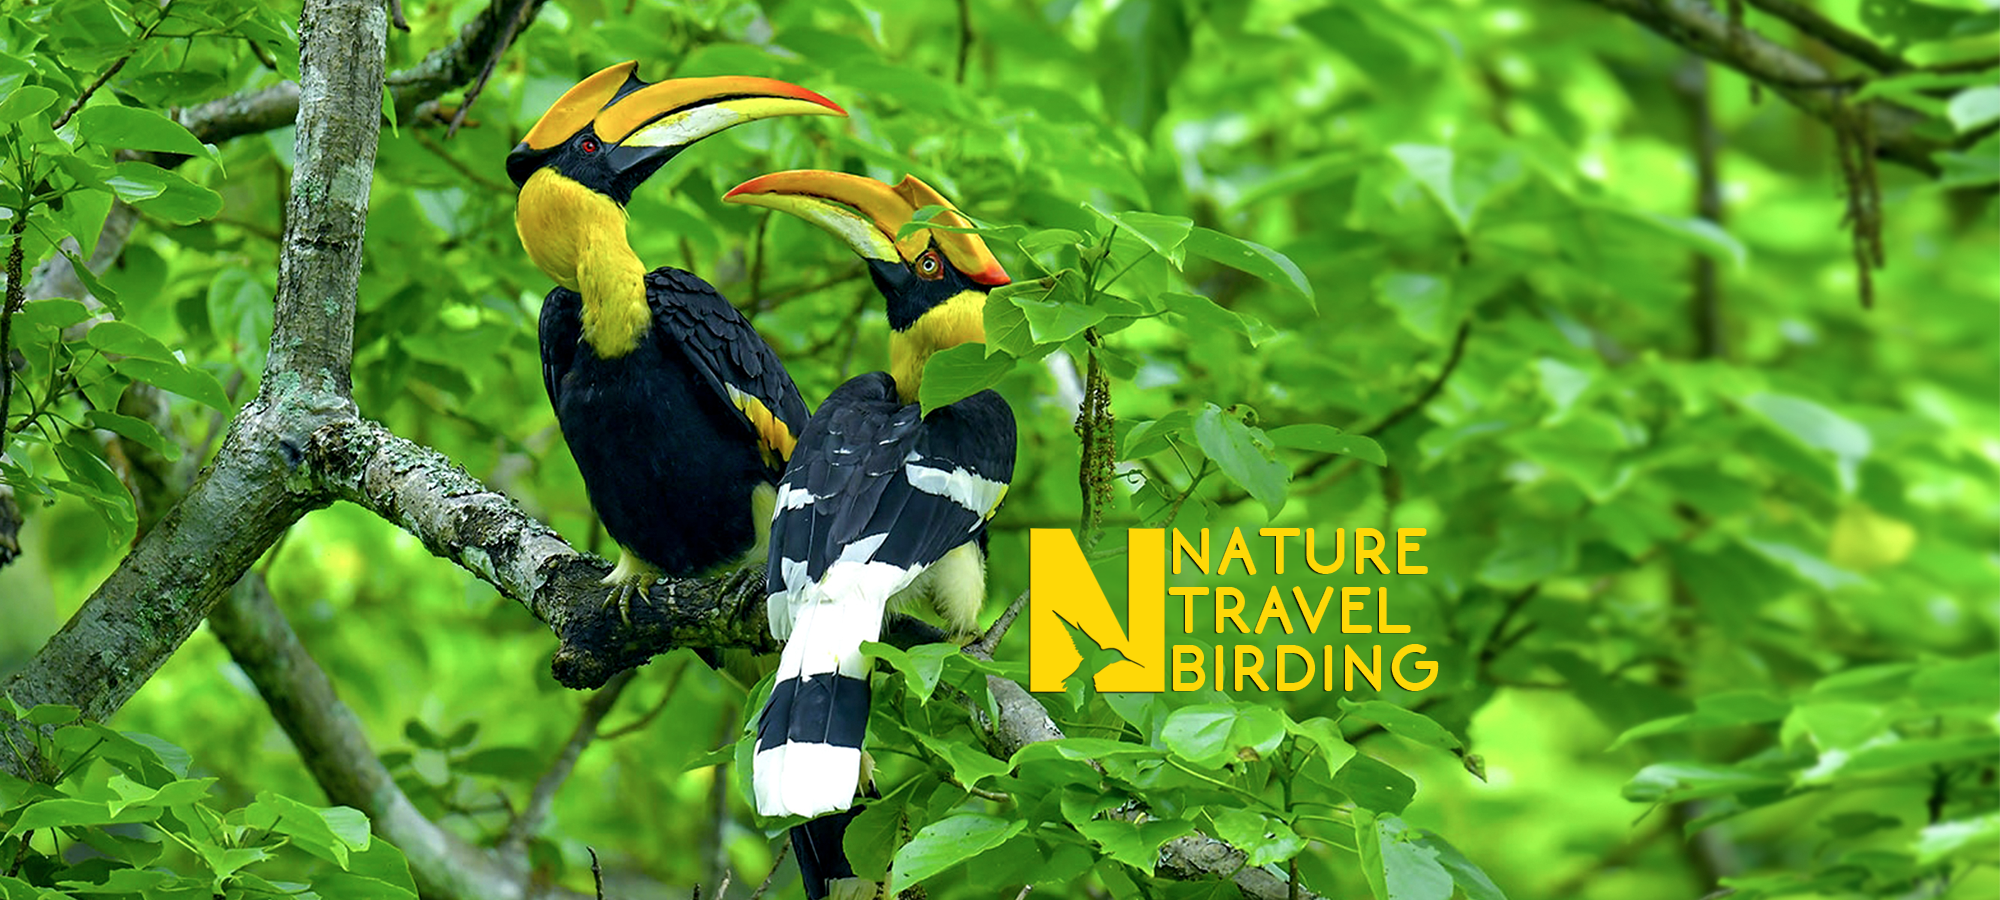 Nature Travel Birding